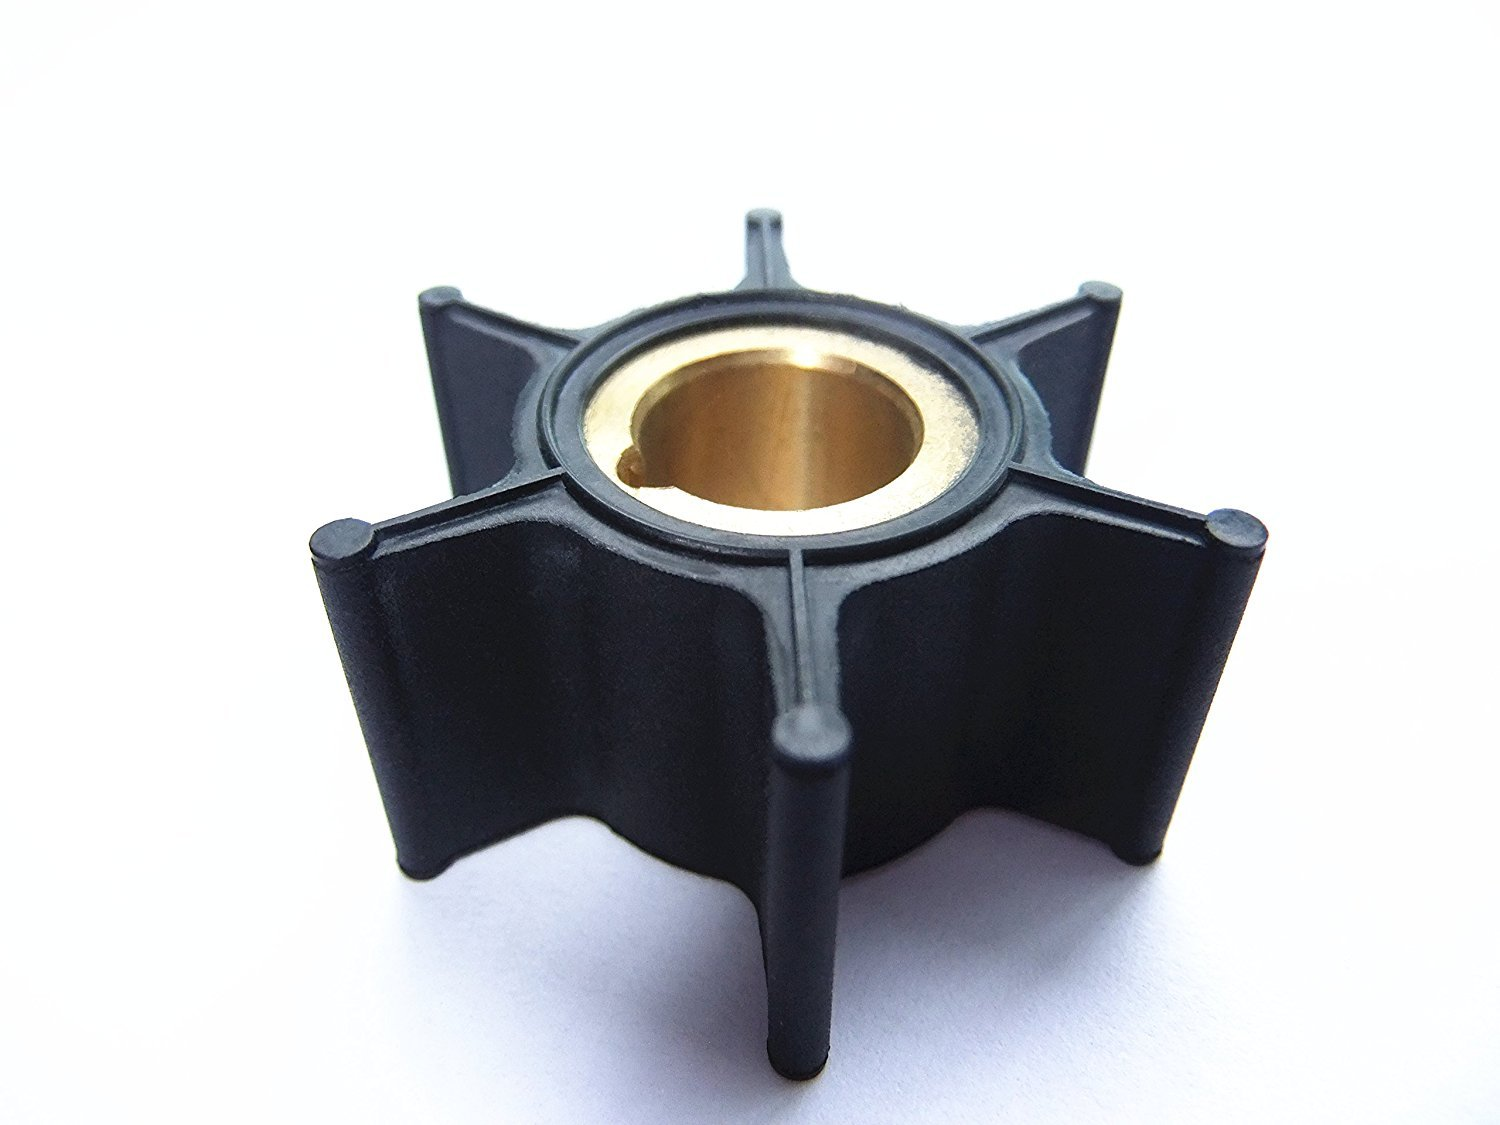 M8B M9.8B Outboard Engine Water Pump Impeller 3B2-65021-1 18-8920 For Tohatsu Nissan Fit Tohatsu 2-stroke M6B